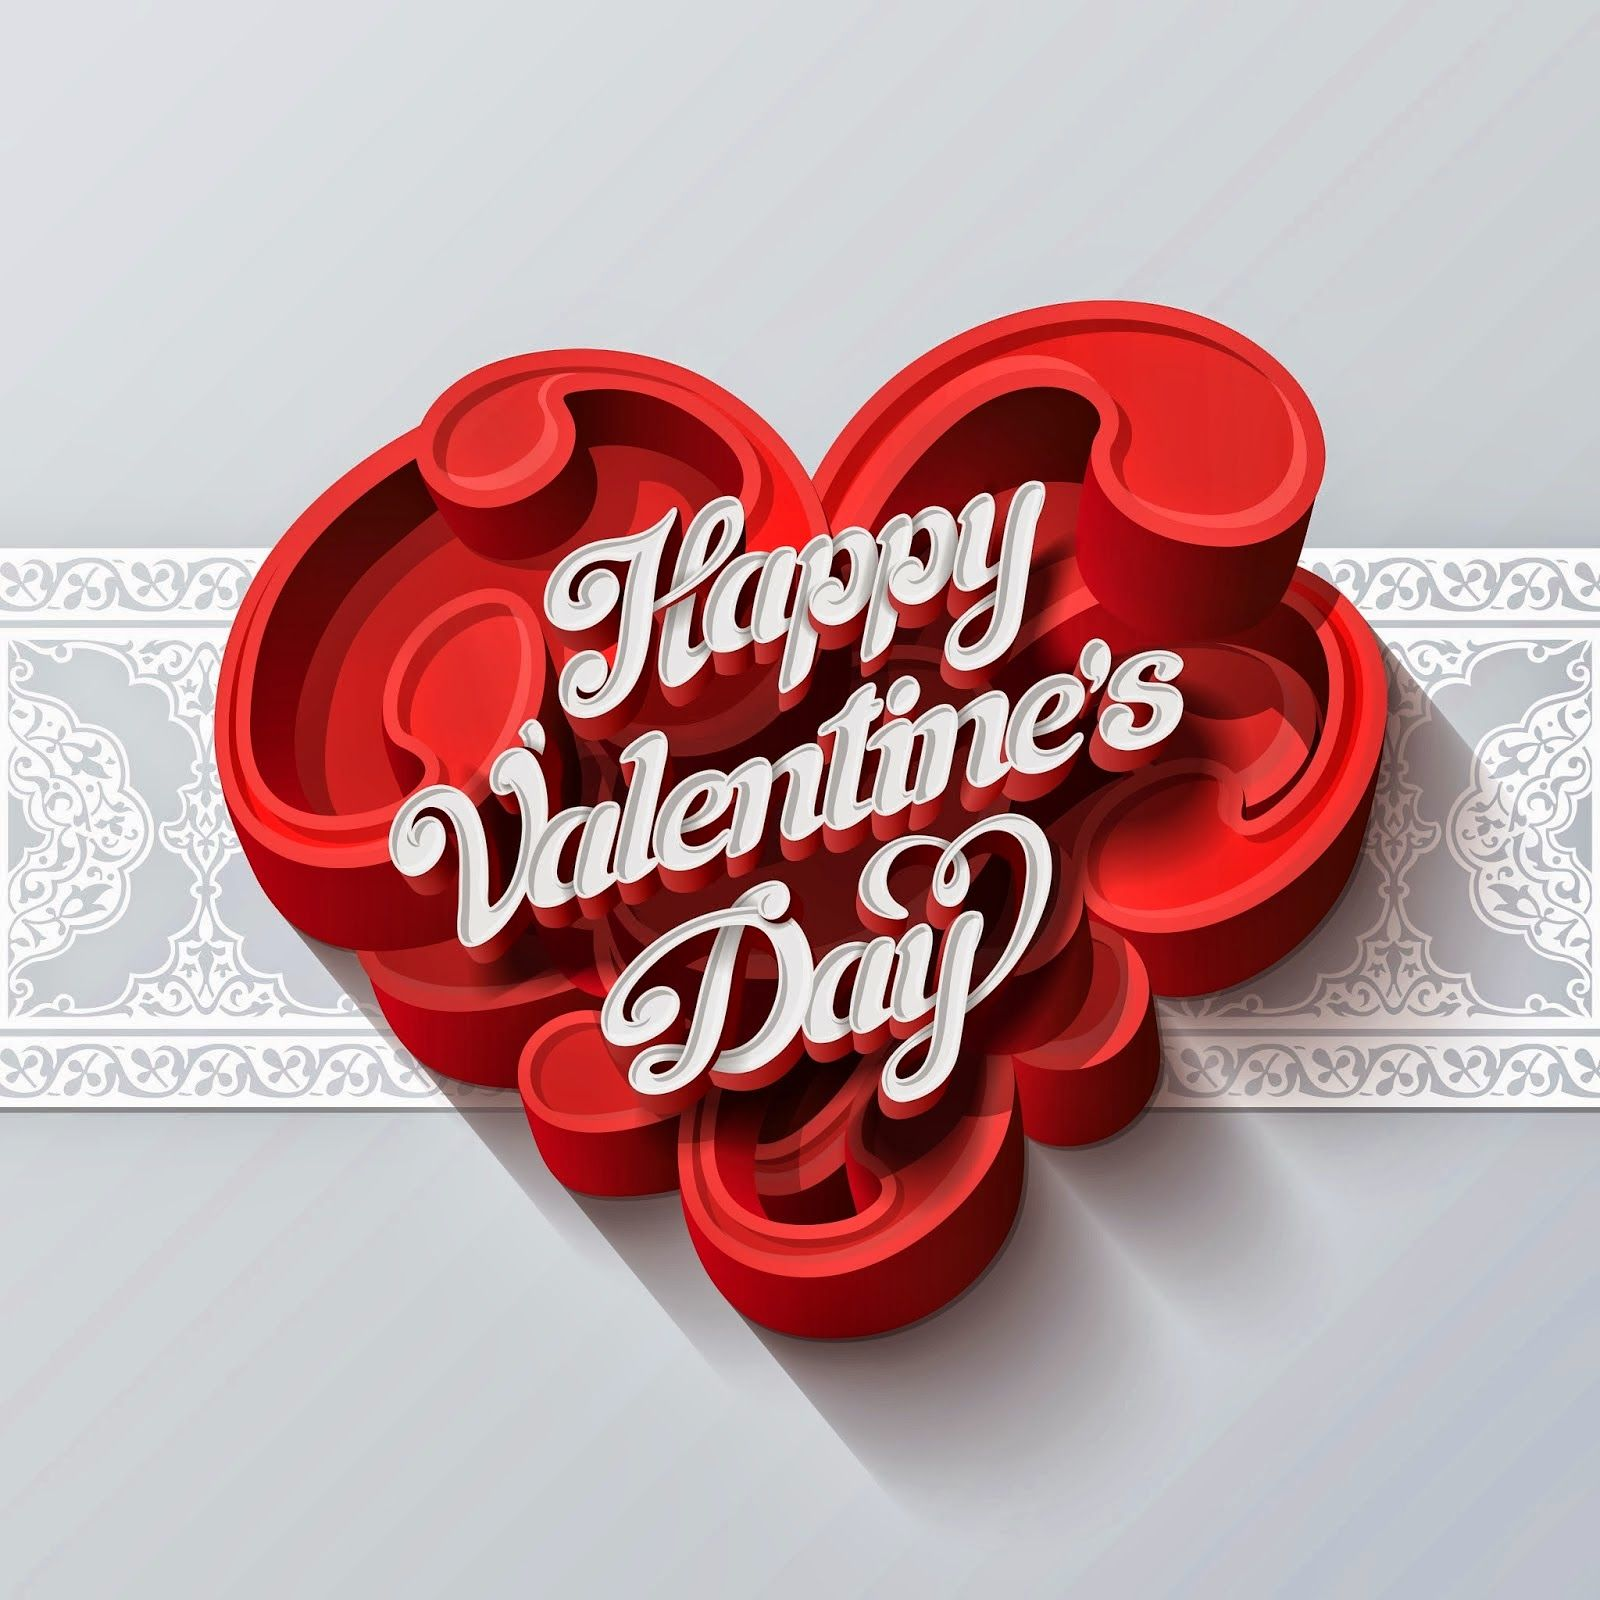 valentines day love pictures and wallpapers hd | wallpapers 4k, Ideas